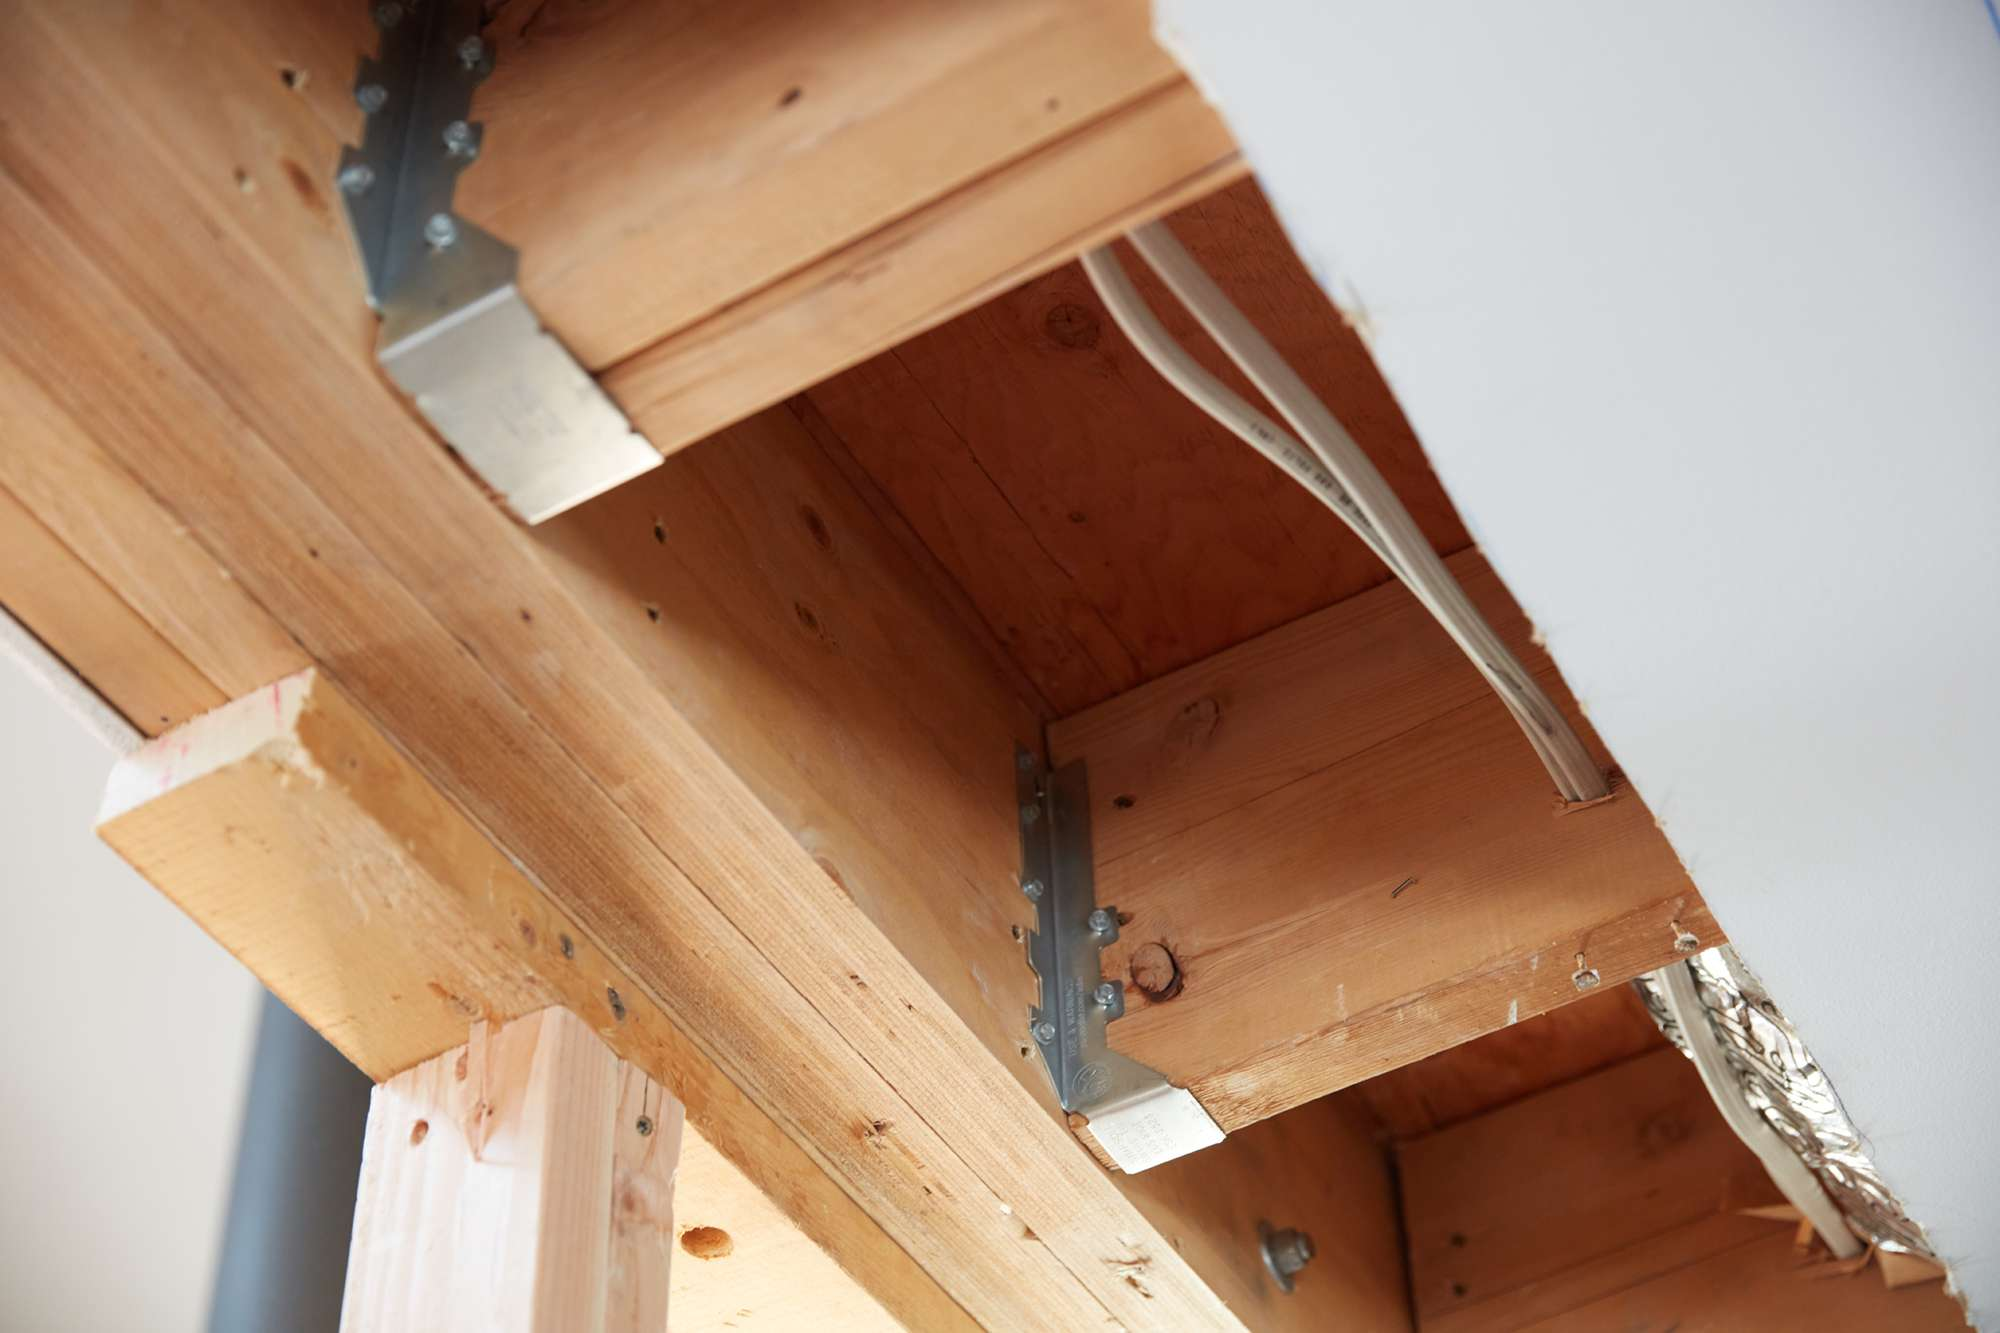 Wooden joists supporting ceiling